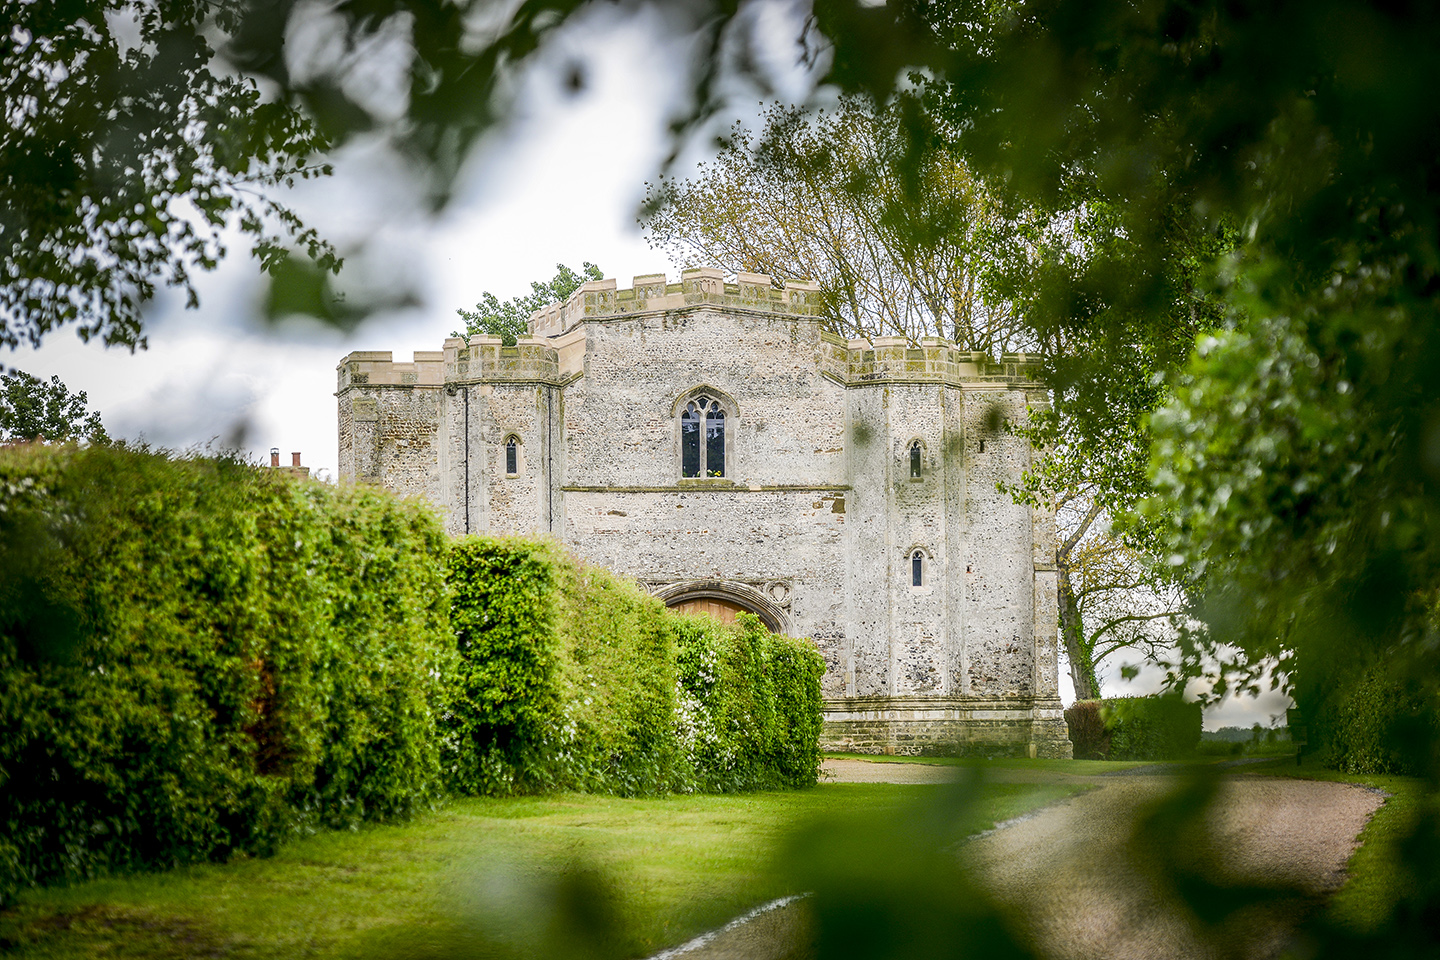 The historic gatehouse at Pentney Abbey is the perfect setting for a wedding ceremony